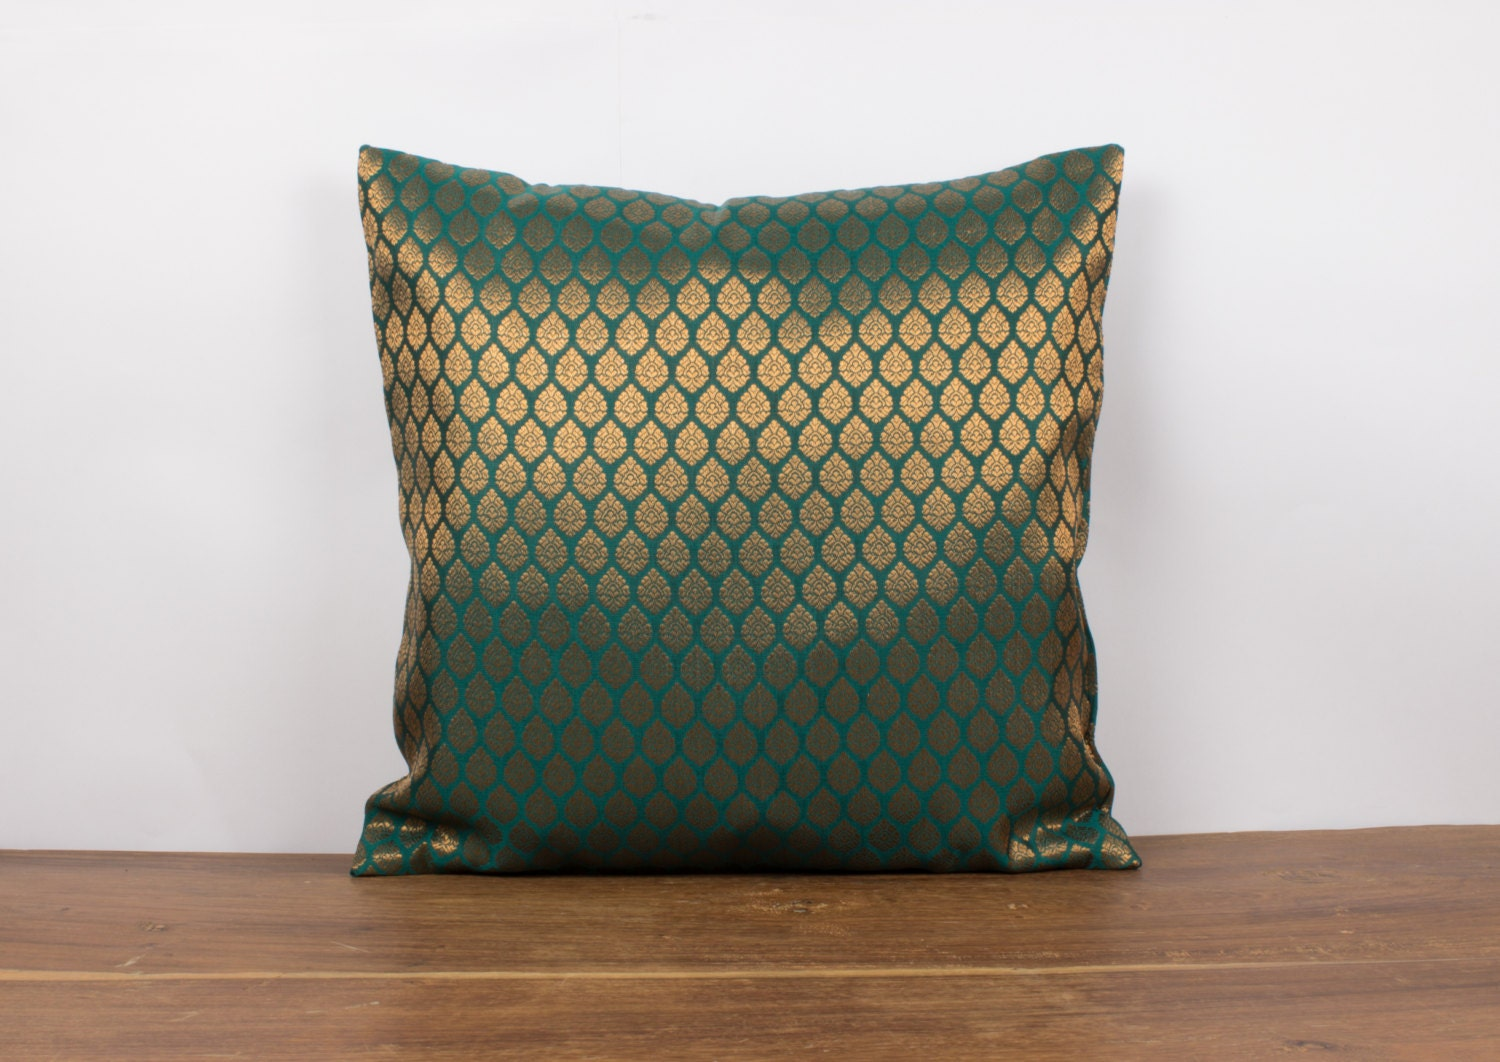 Emerald Green Silk Pillow Decorative throw pillow by Fabricasia